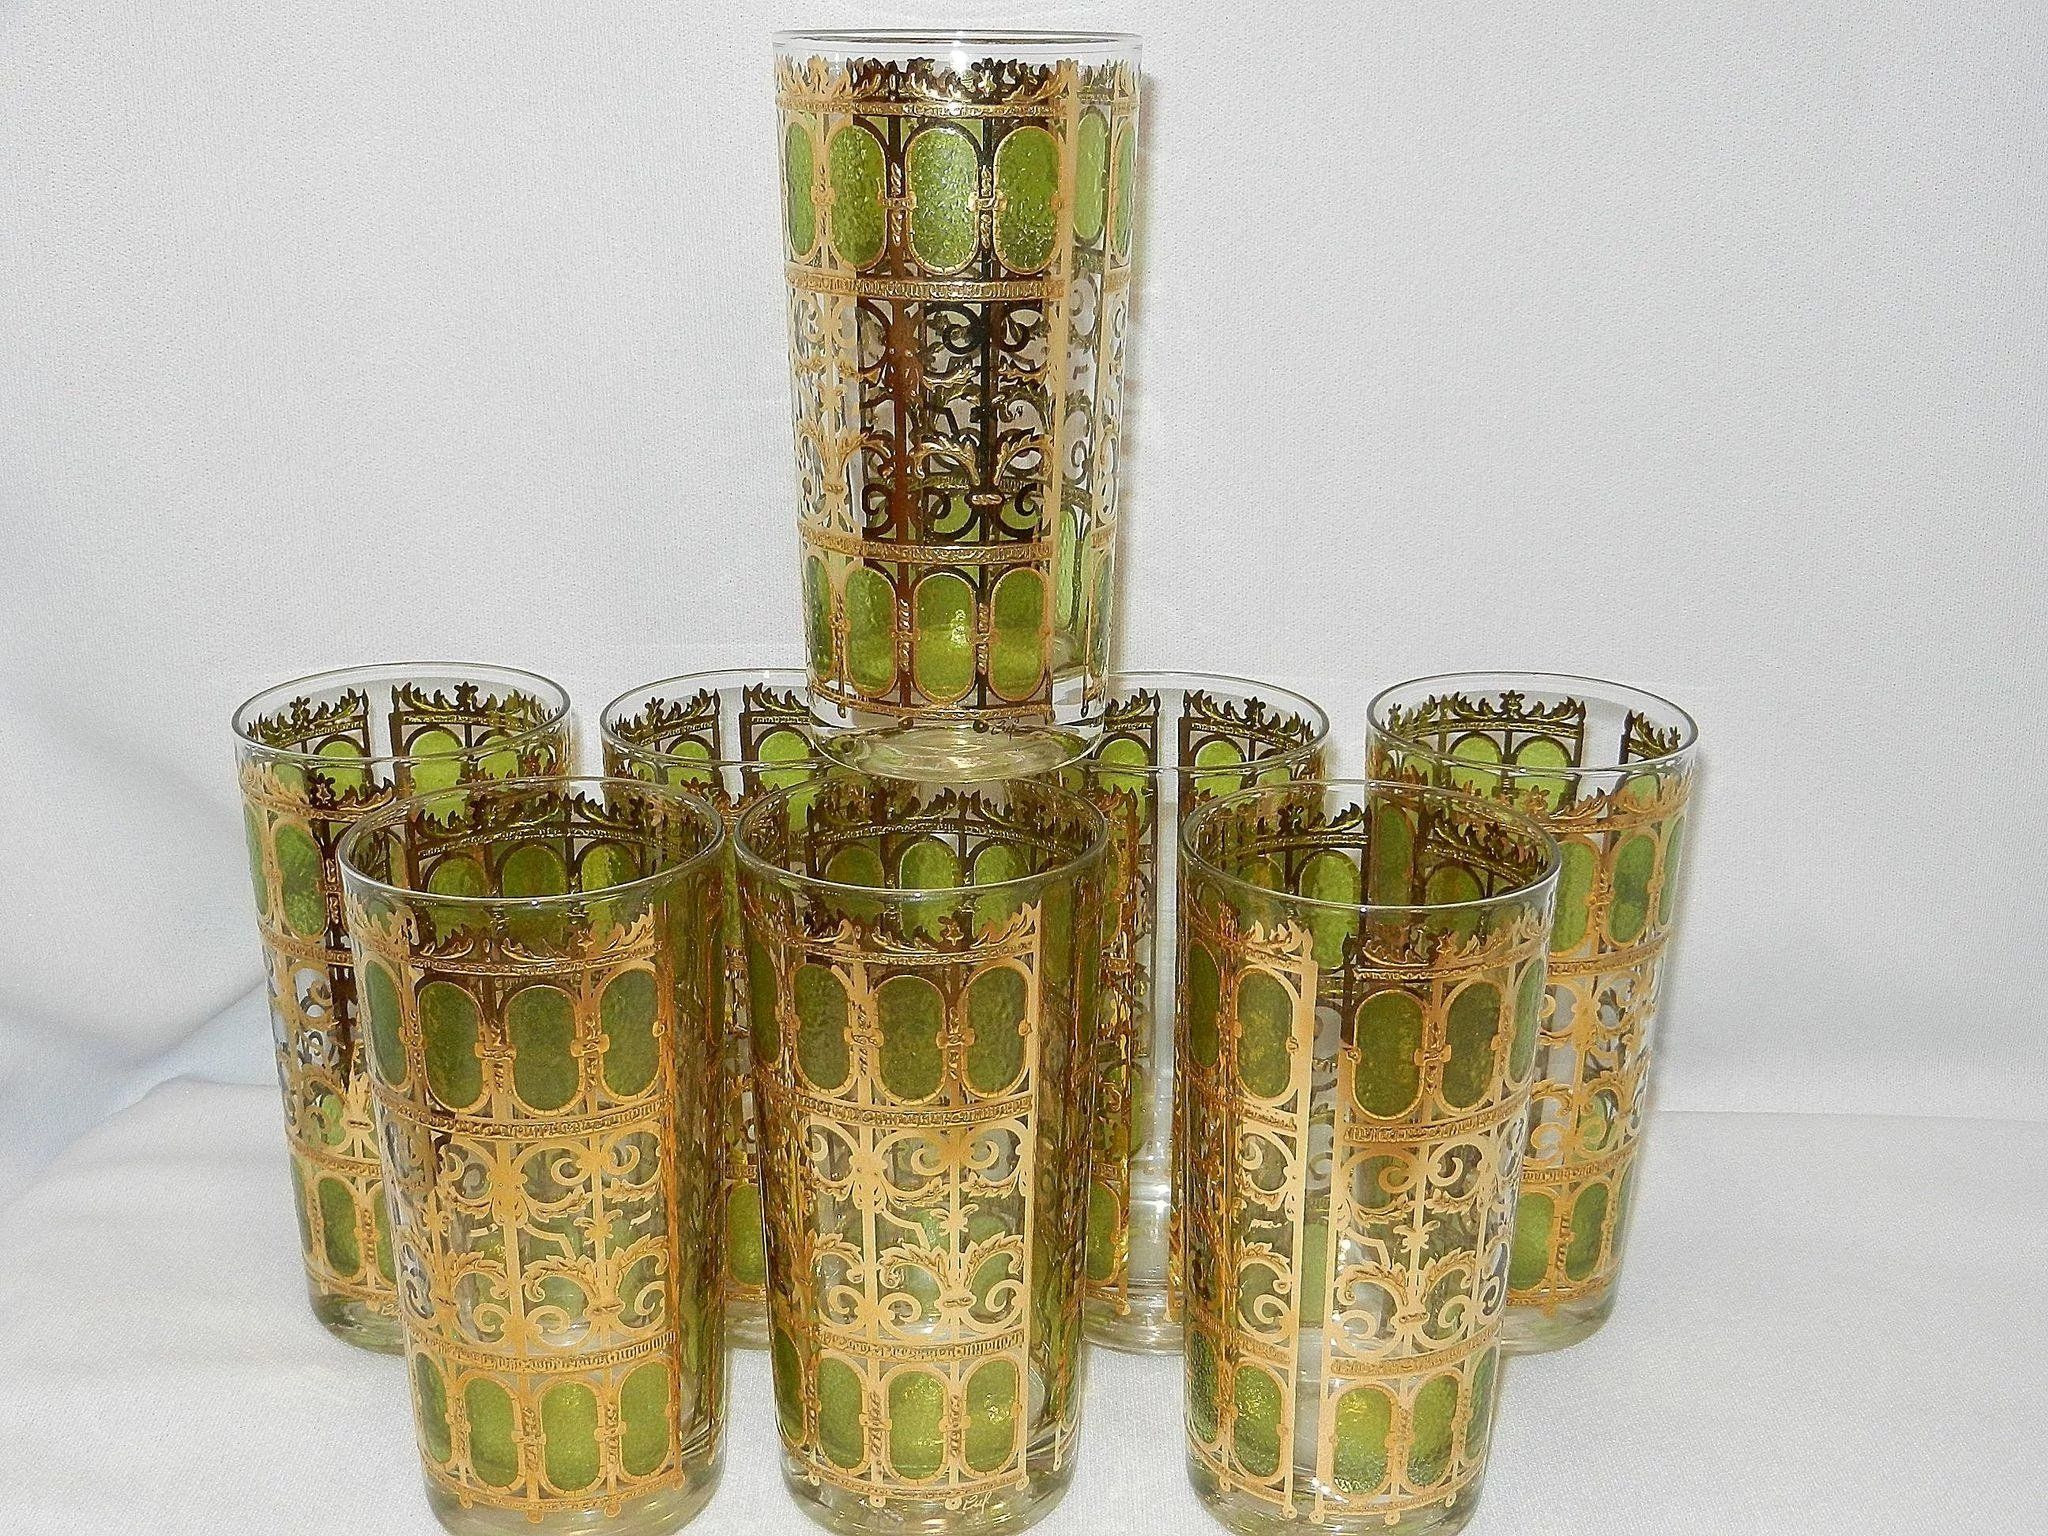 waterford lismore diamond vase of 48 nachtmann crystal vase the weekly world throughout vintage mid century culver green 22kt gold scroll pattern high ball